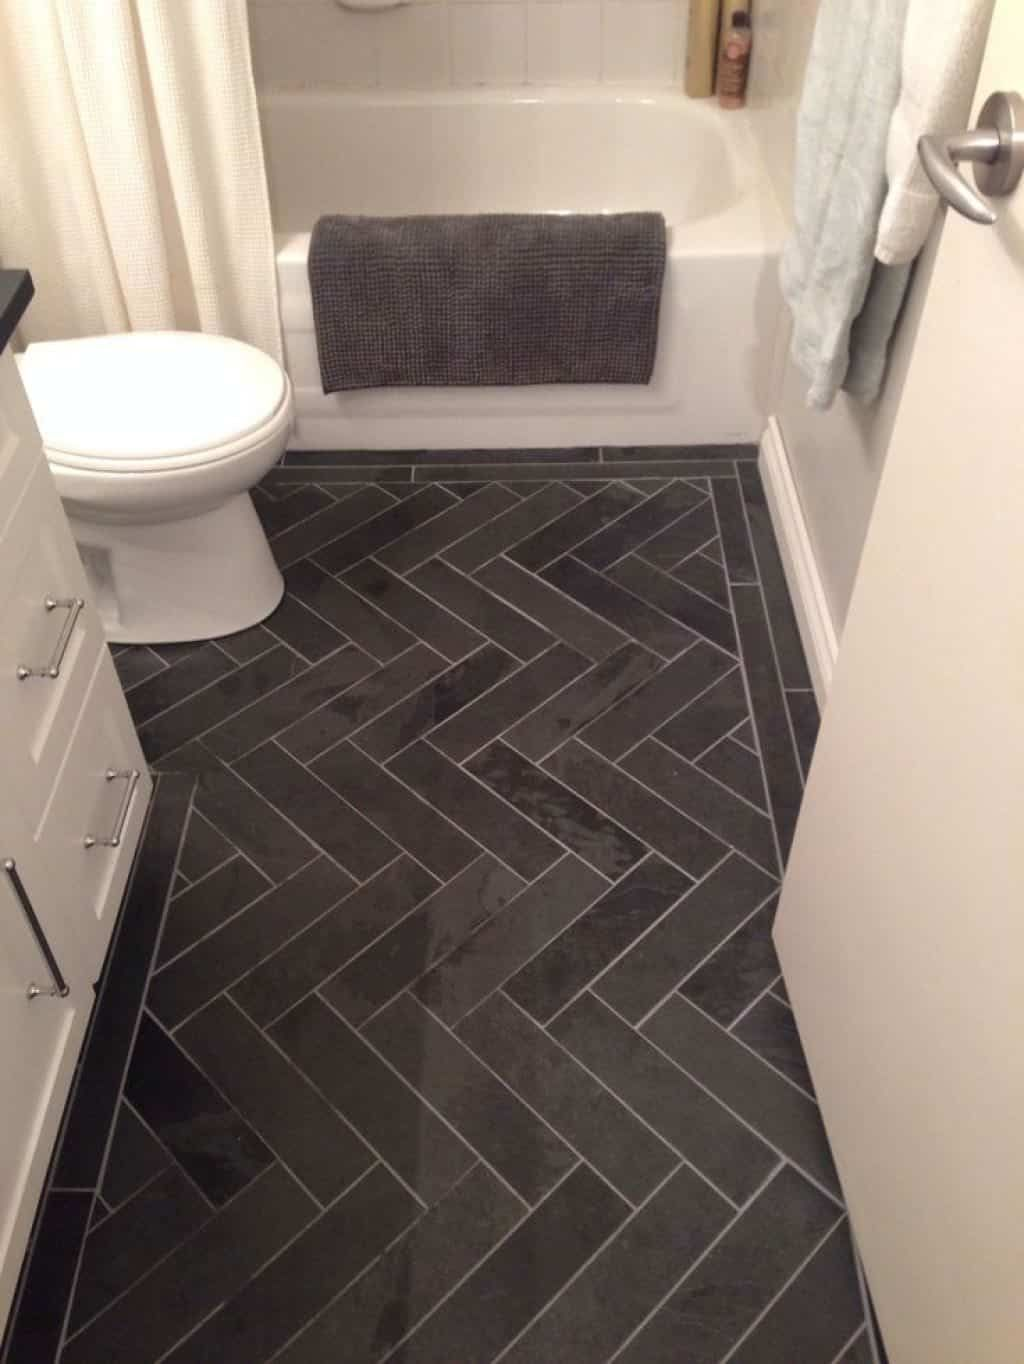 Durable Slate Interior Flooring Small Master Bathroom Small Bathroom Remodel Patterned Bathroom Tiles